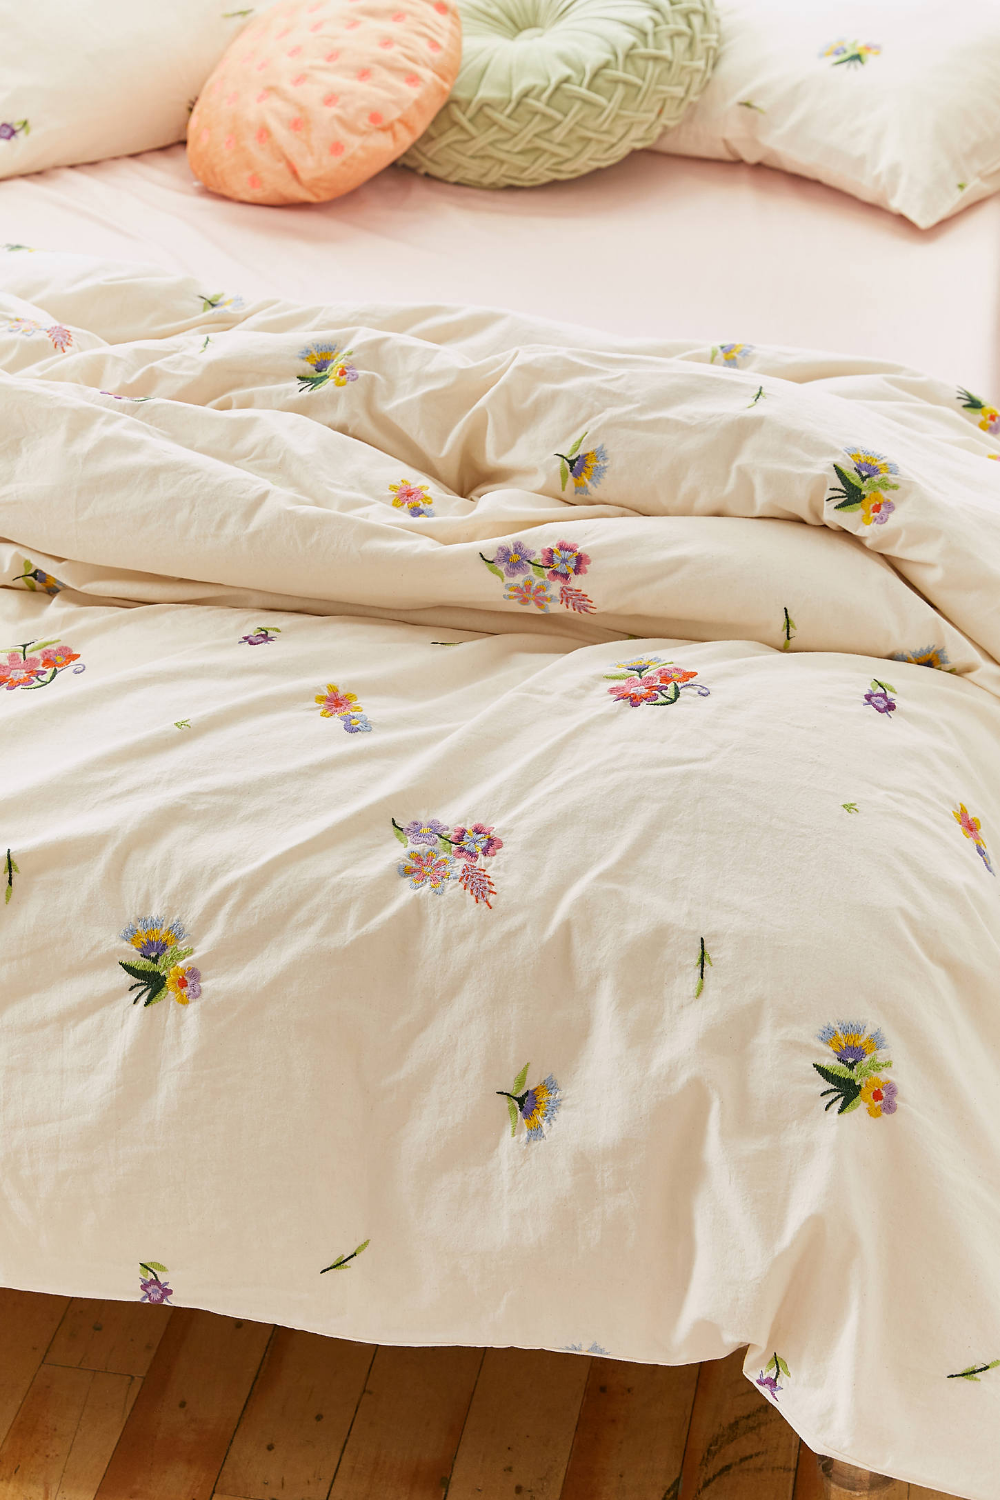 Georgine Embroidered Floral Duvet Cover In 2020 Floral Duvet Cover Embroidered Duvet Cover Floral Duvet